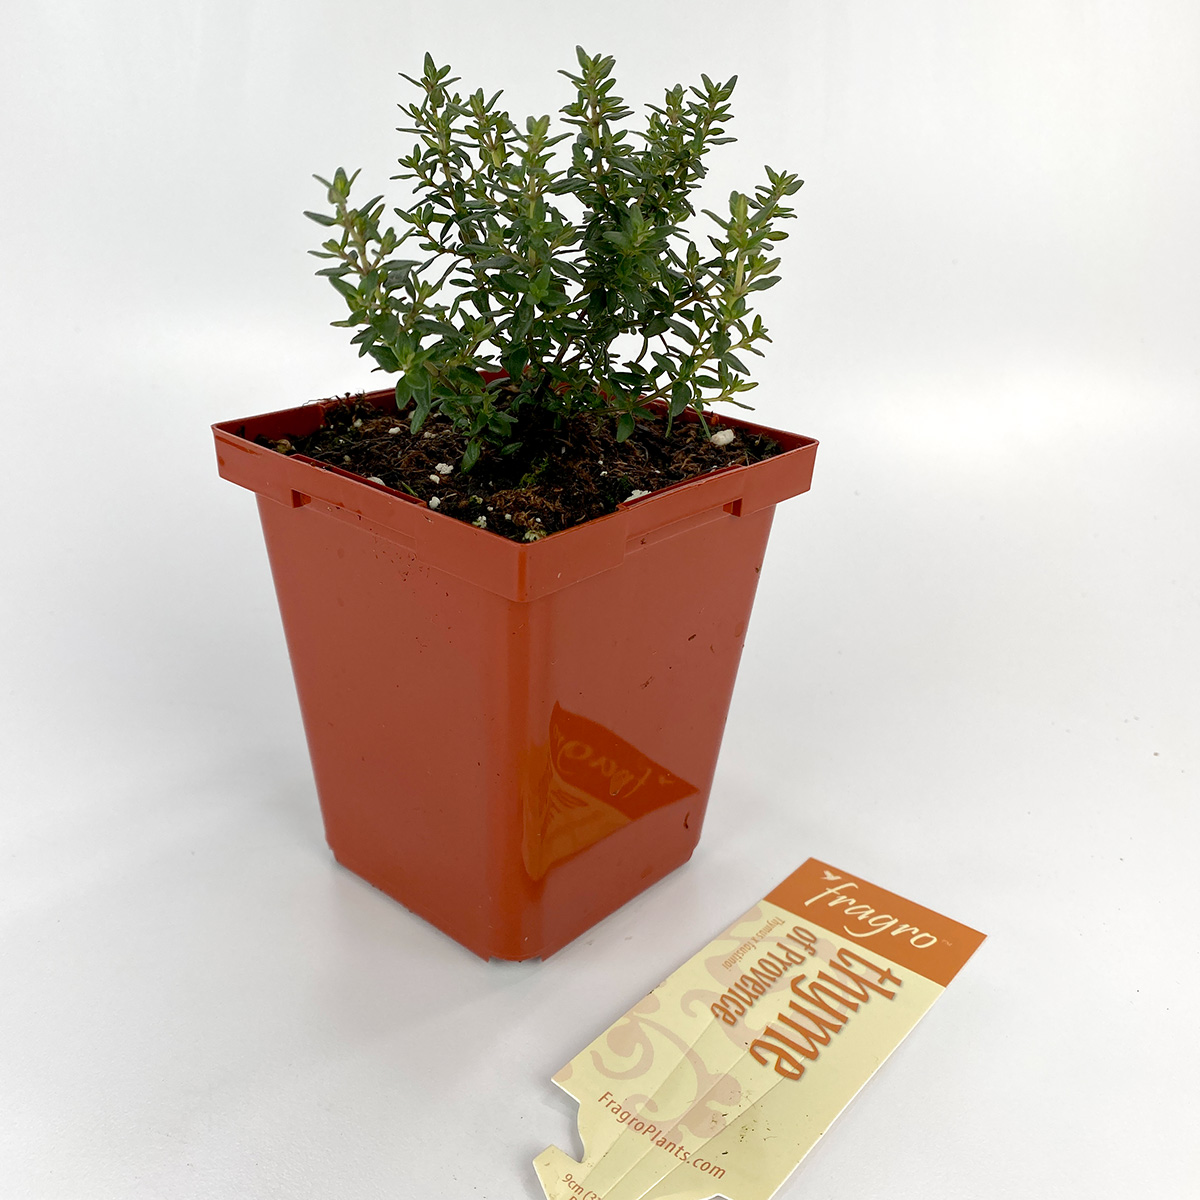 Thyme_OfProvence_4in.jpg